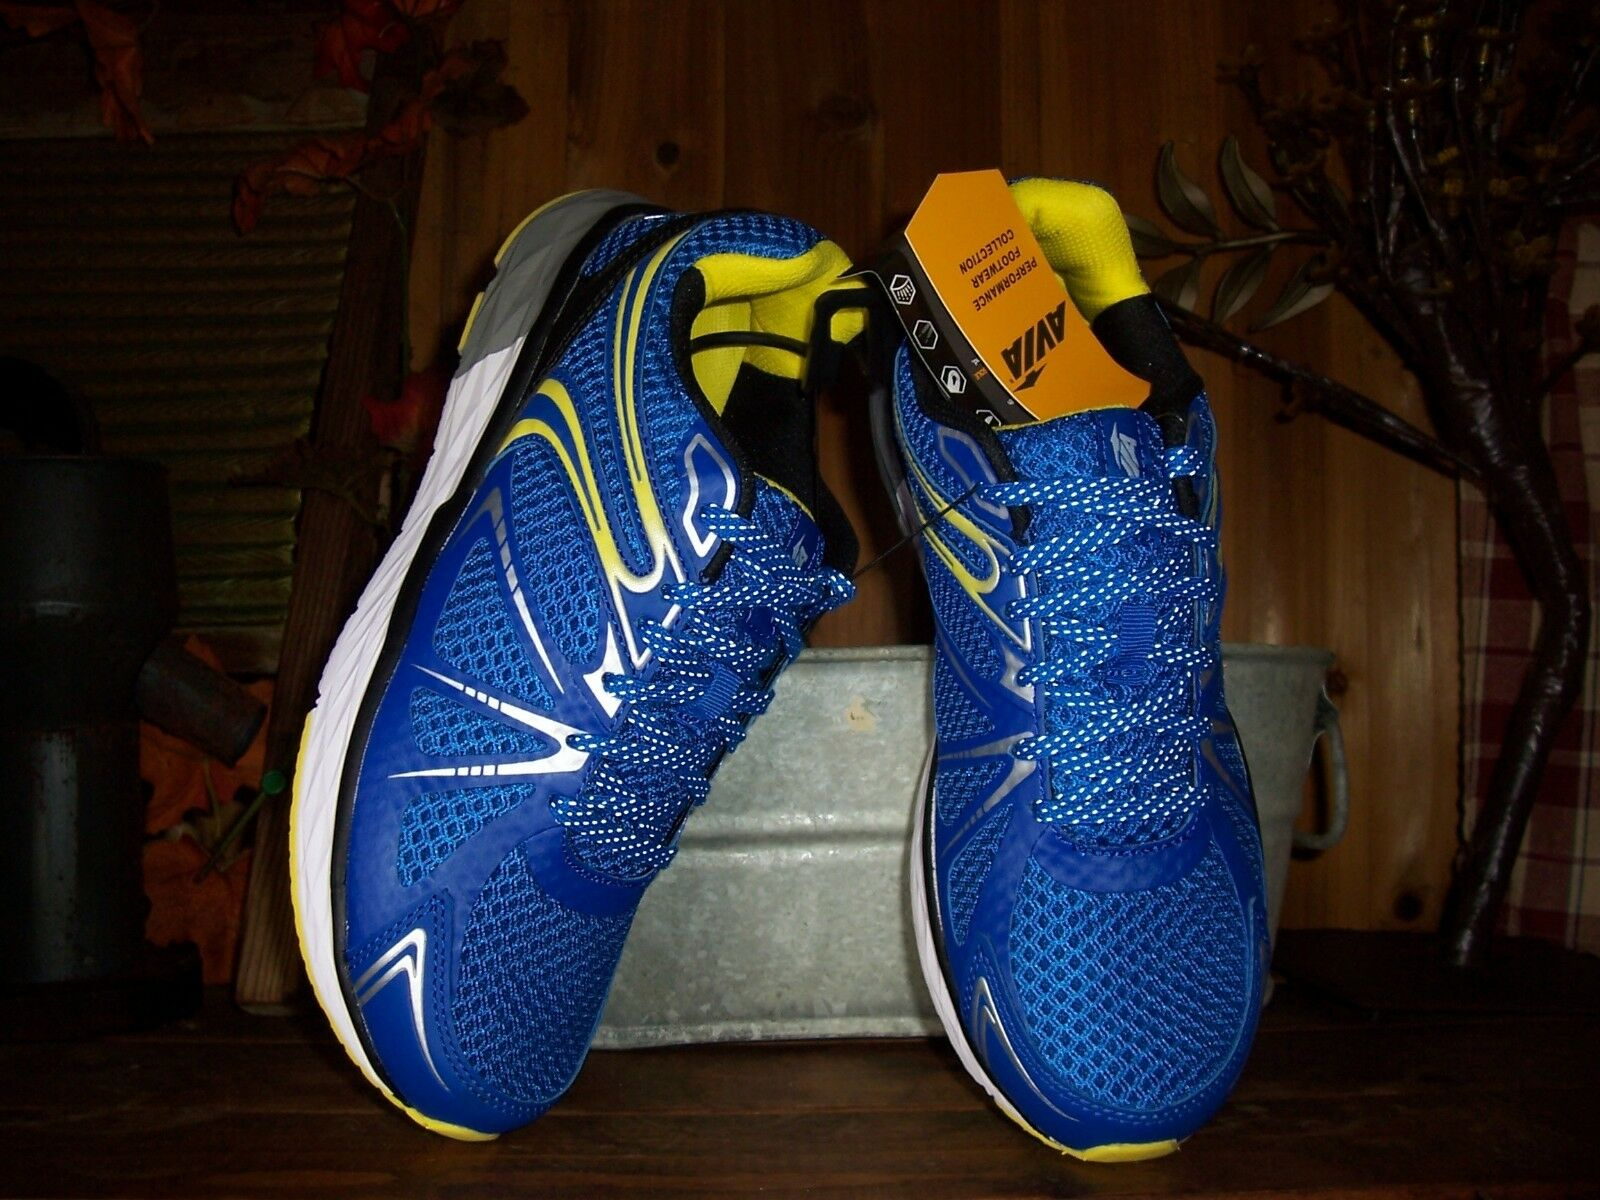 AVIA MENS ATHLETIC SHOES SIZE 13 blueE YELLOW CASUAL SNEAKERS LACE UP STYLISH NEW